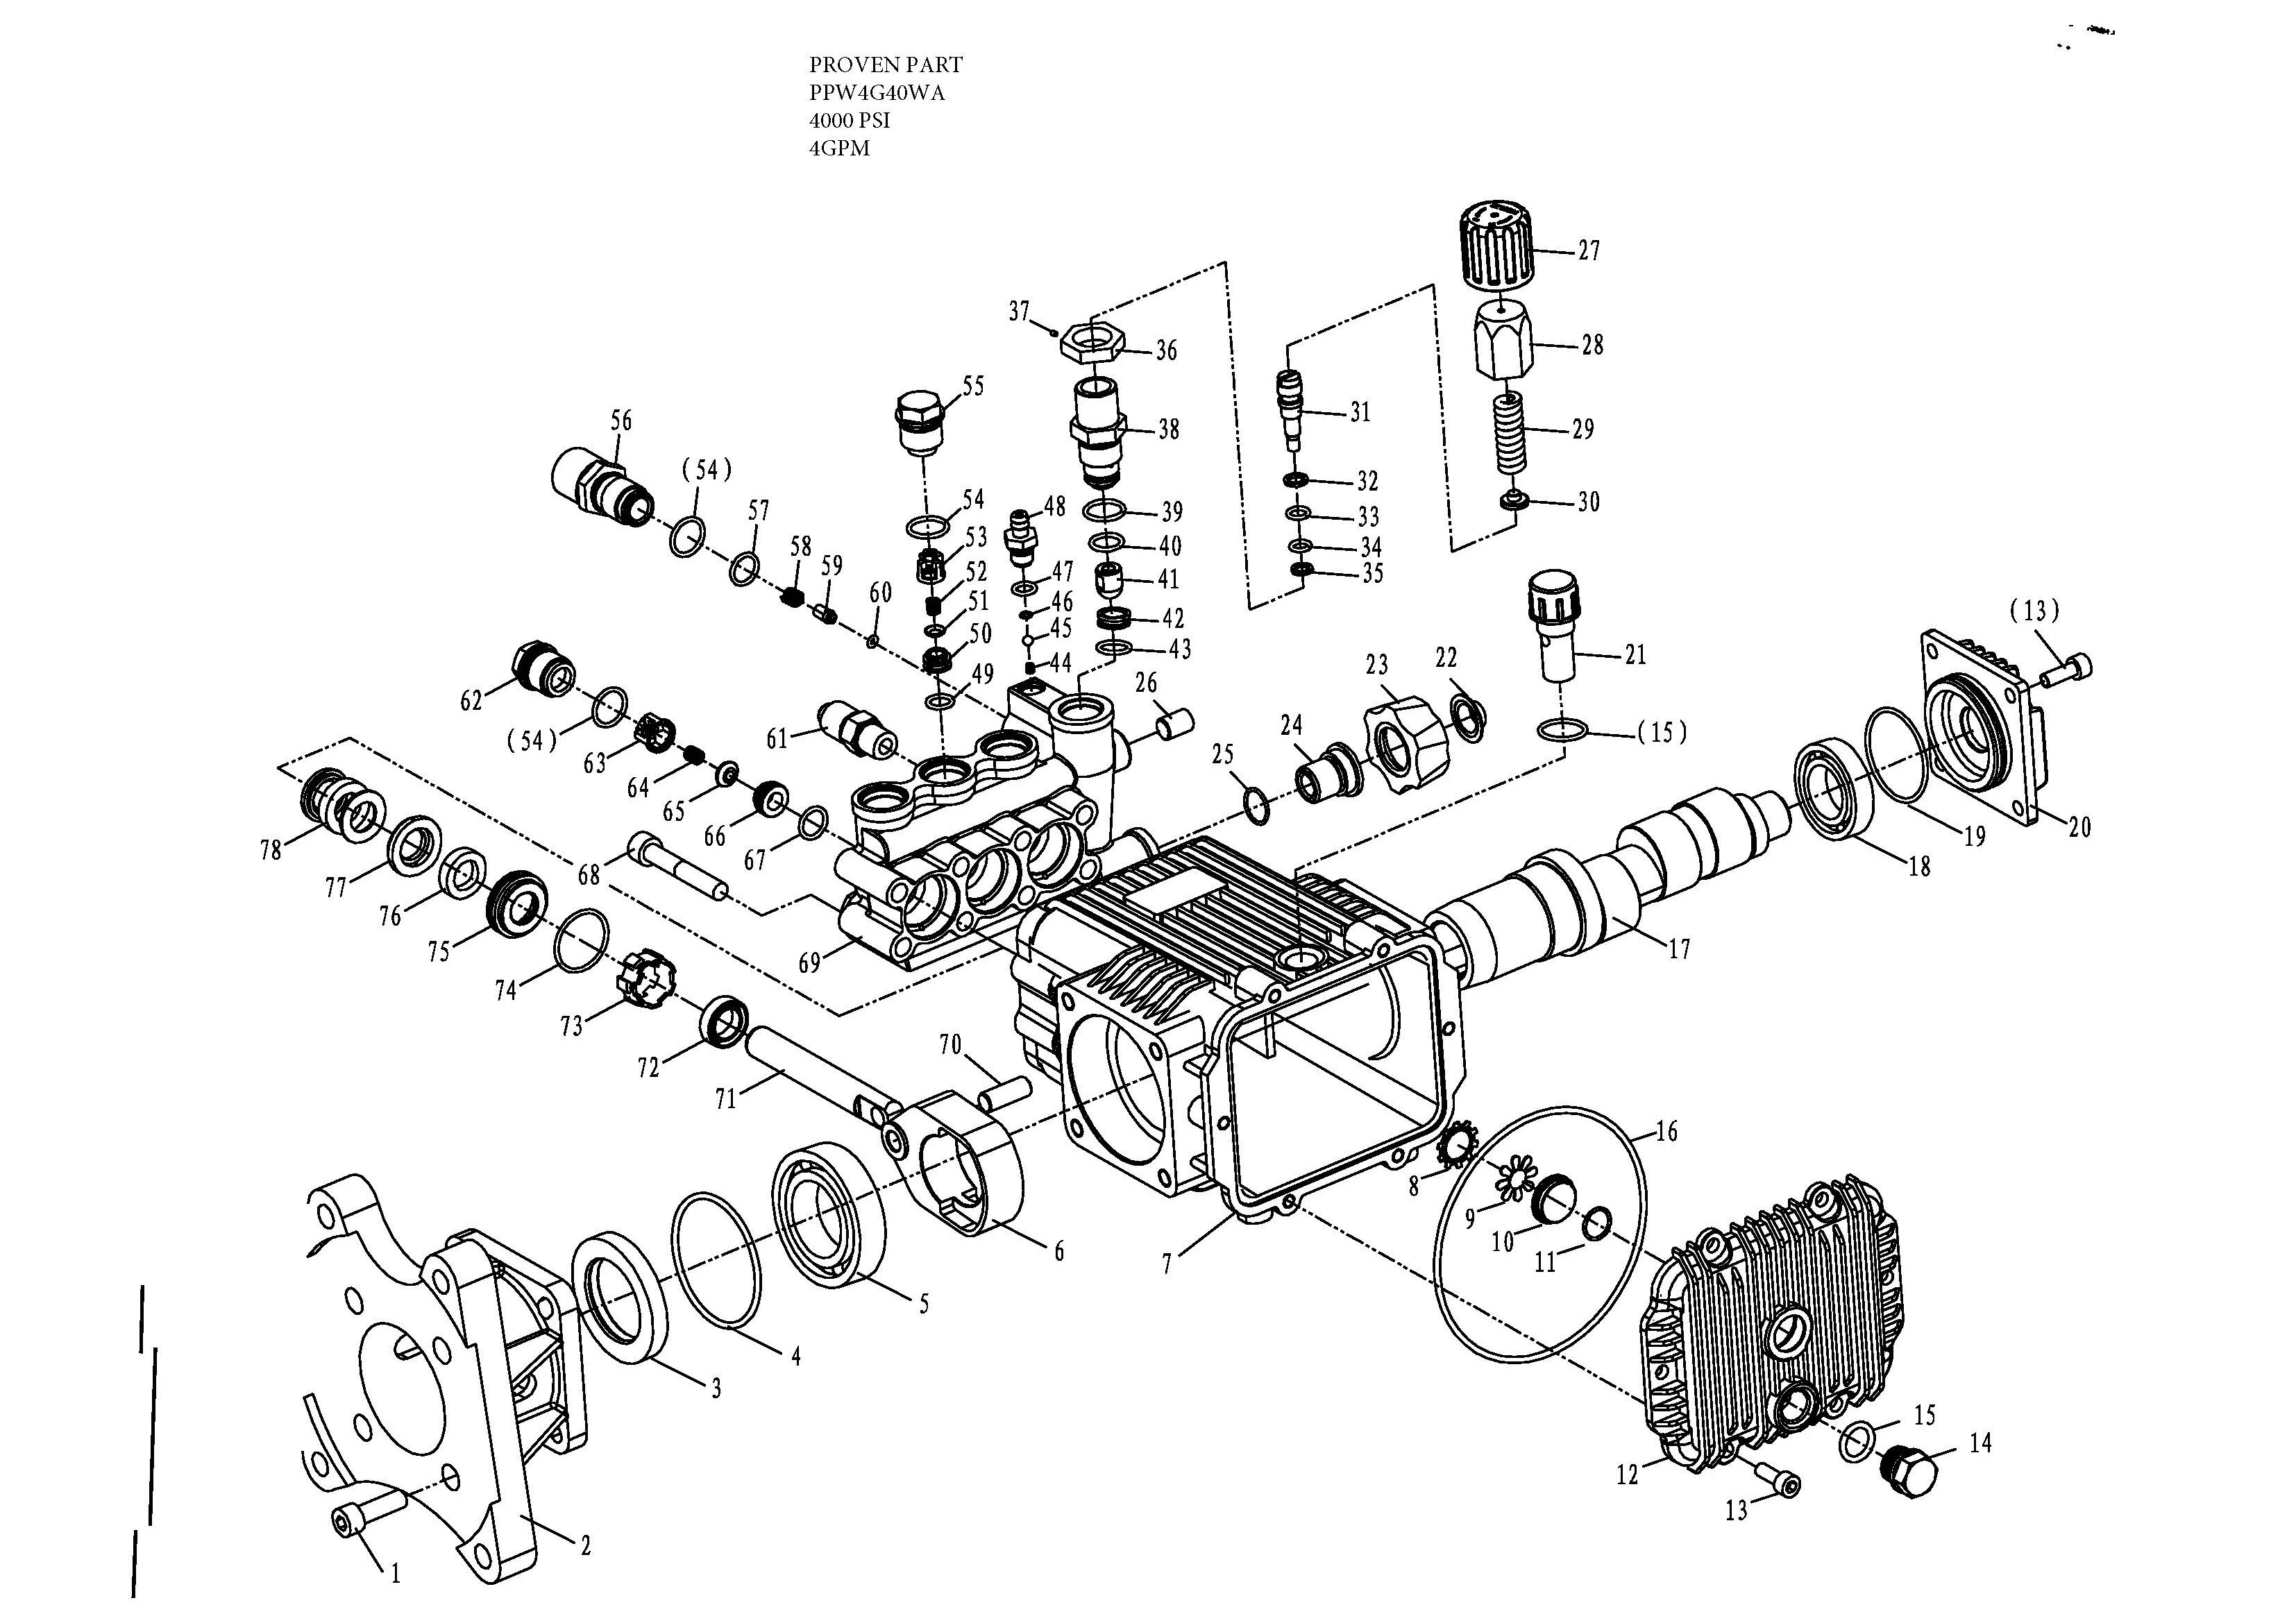 Honda Gx240 Parts Diagram Pressure Washers Of Honda Gx240 Parts Diagram Pressure Washers